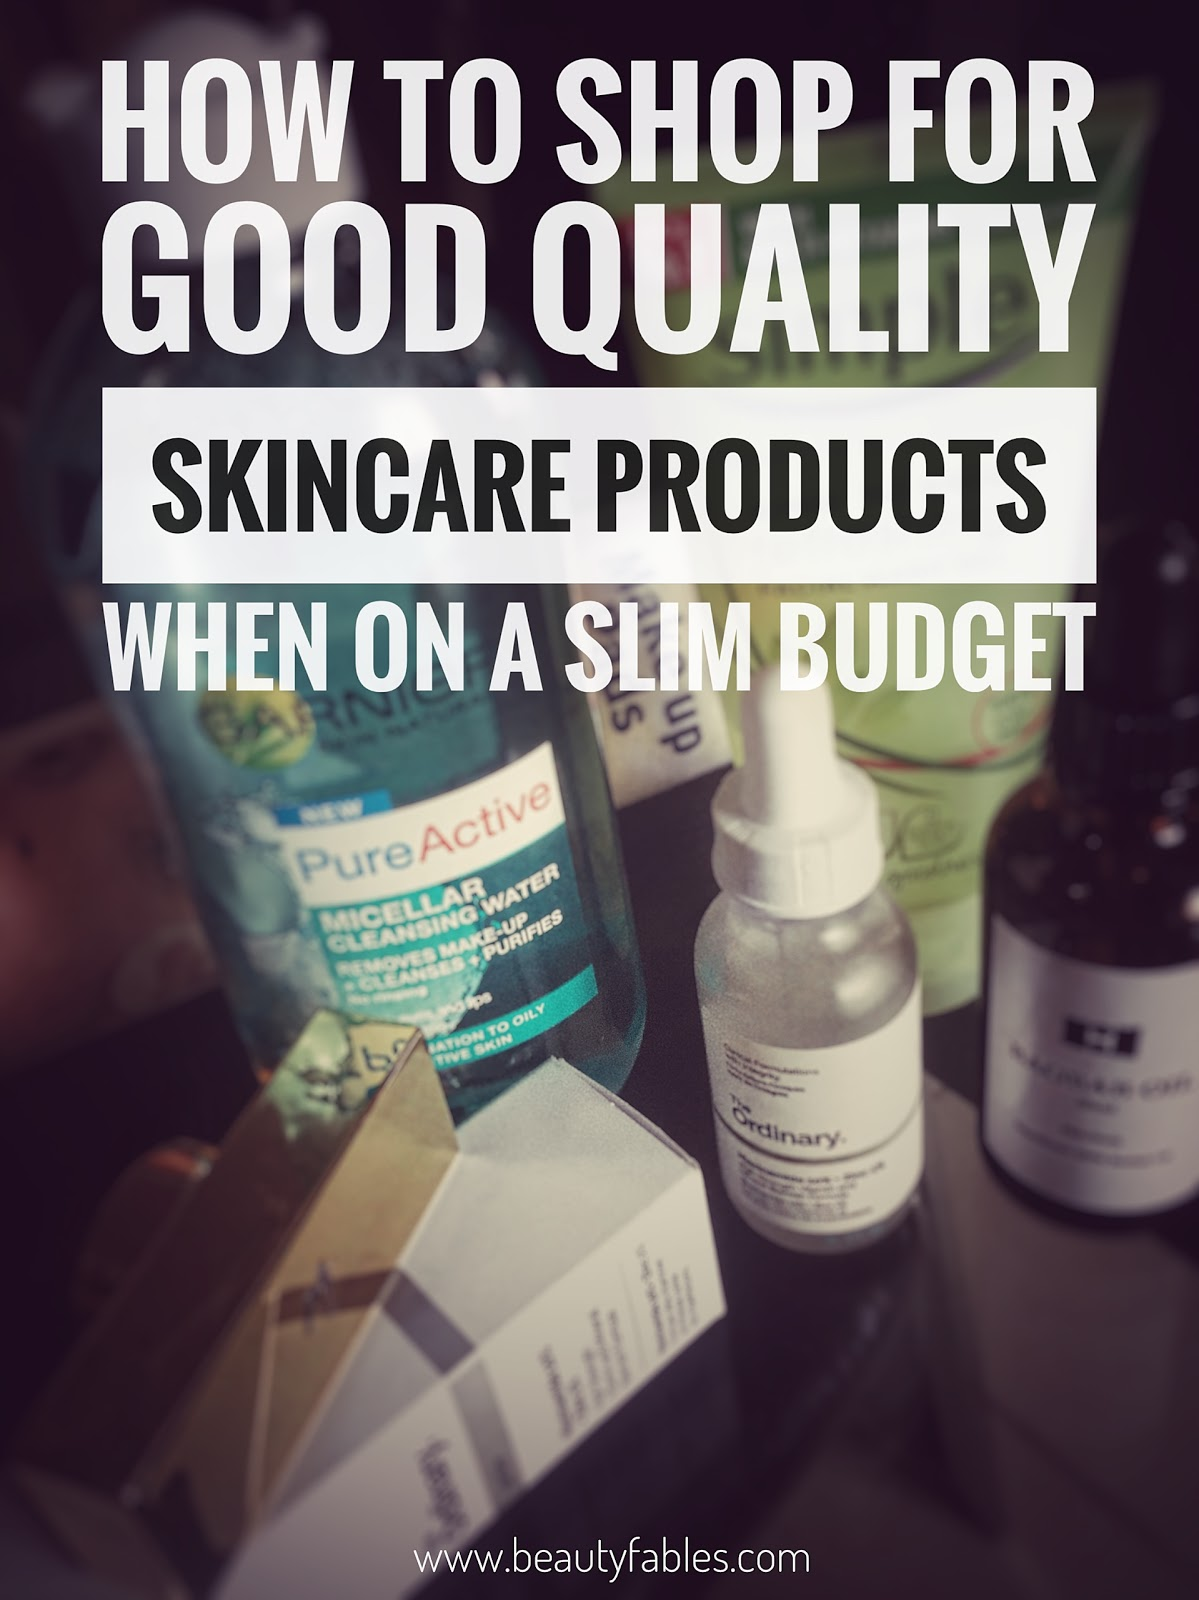 How to shop for quality skincare